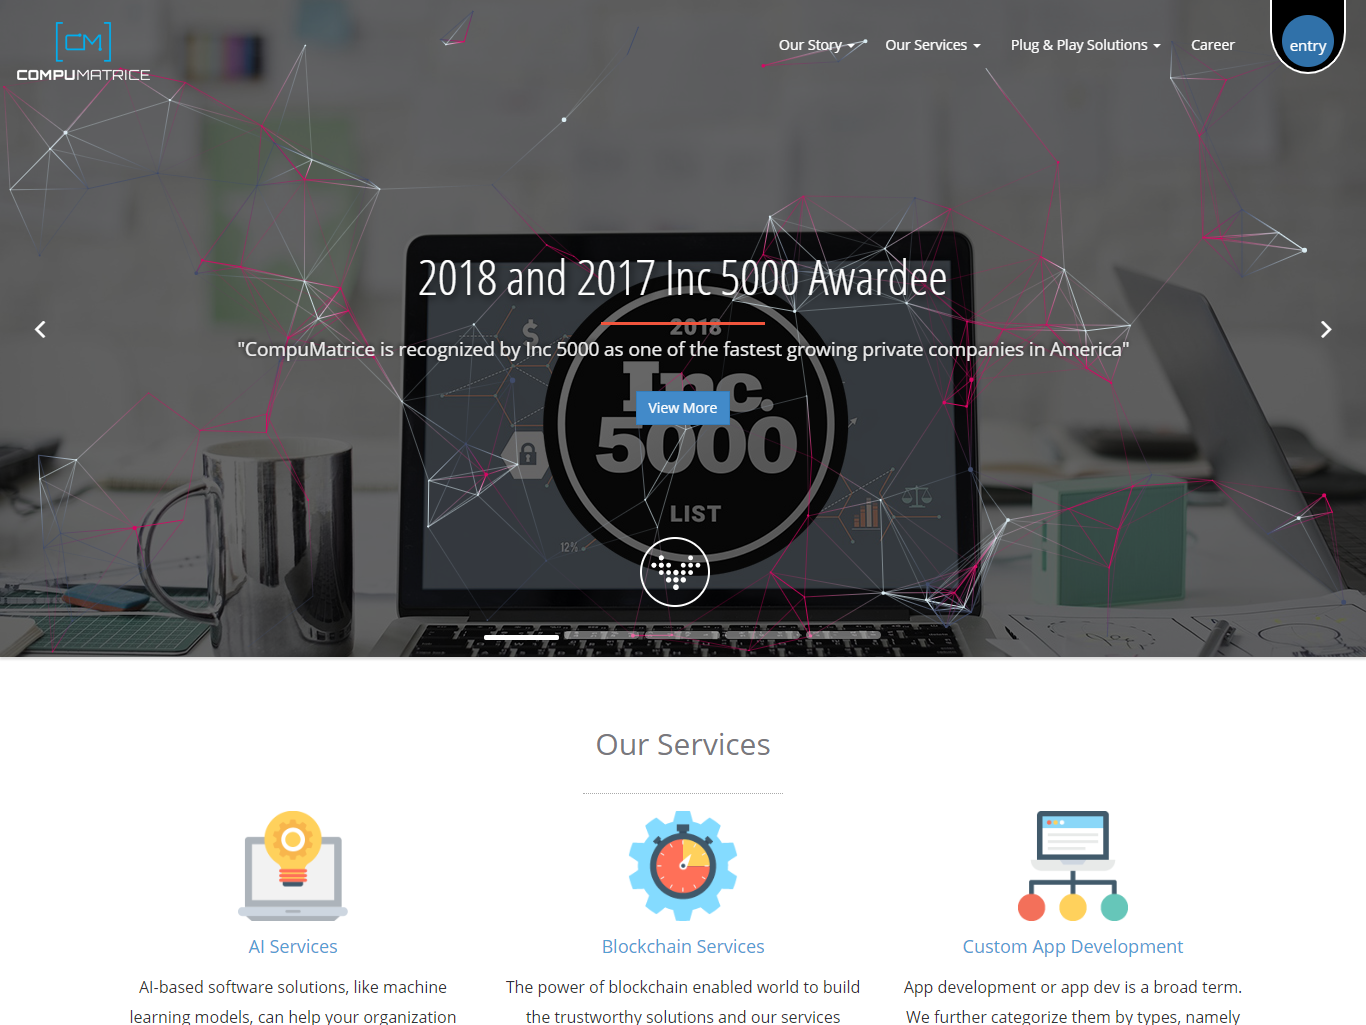 Website Home page by Pramod Mali on Dribbble